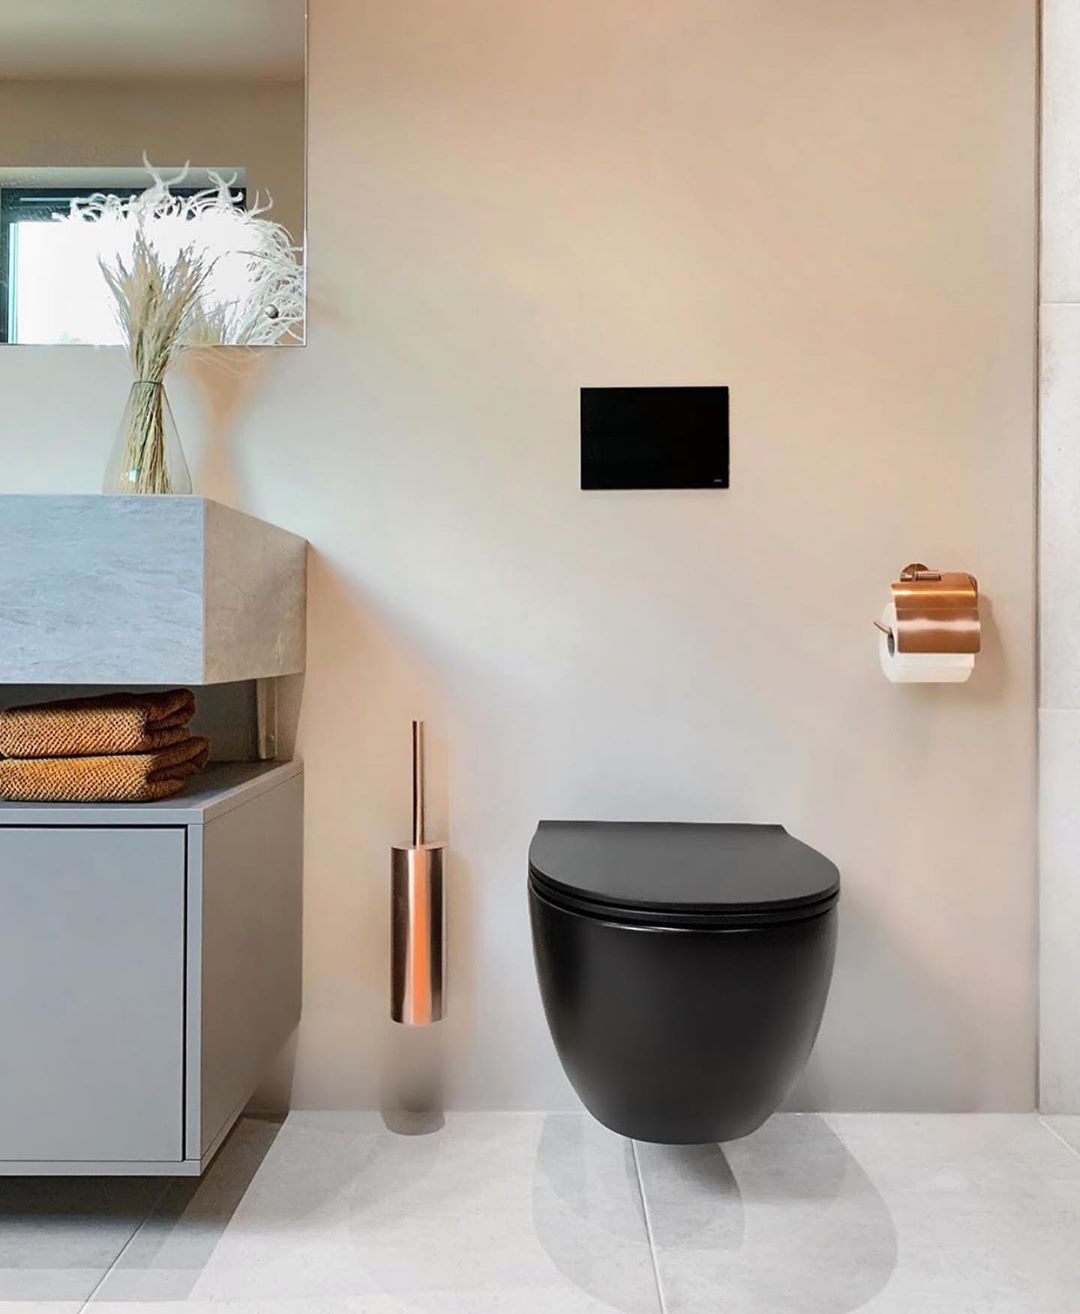 """Photo of INTERIOR DESIGN, HOUSE & HOME on Instagram: """"Credit: @ stine.moi ? Oh so nice details … Black toilet and with beautiful details around it! #bathroom #bathroominspo #bathroom inspiration… """""""